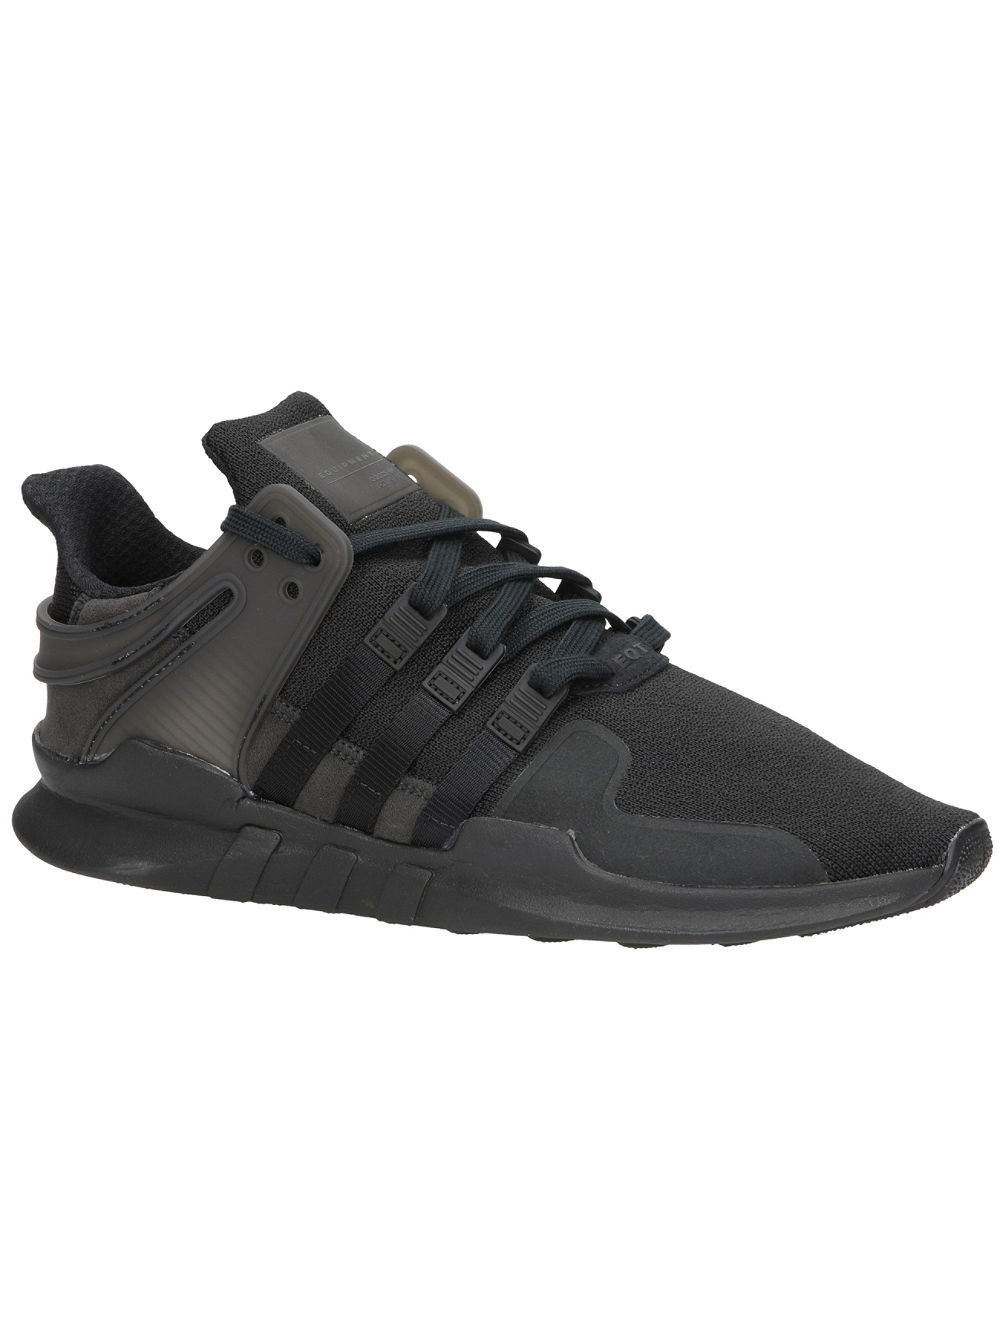 EQT Support ADV Sneakers